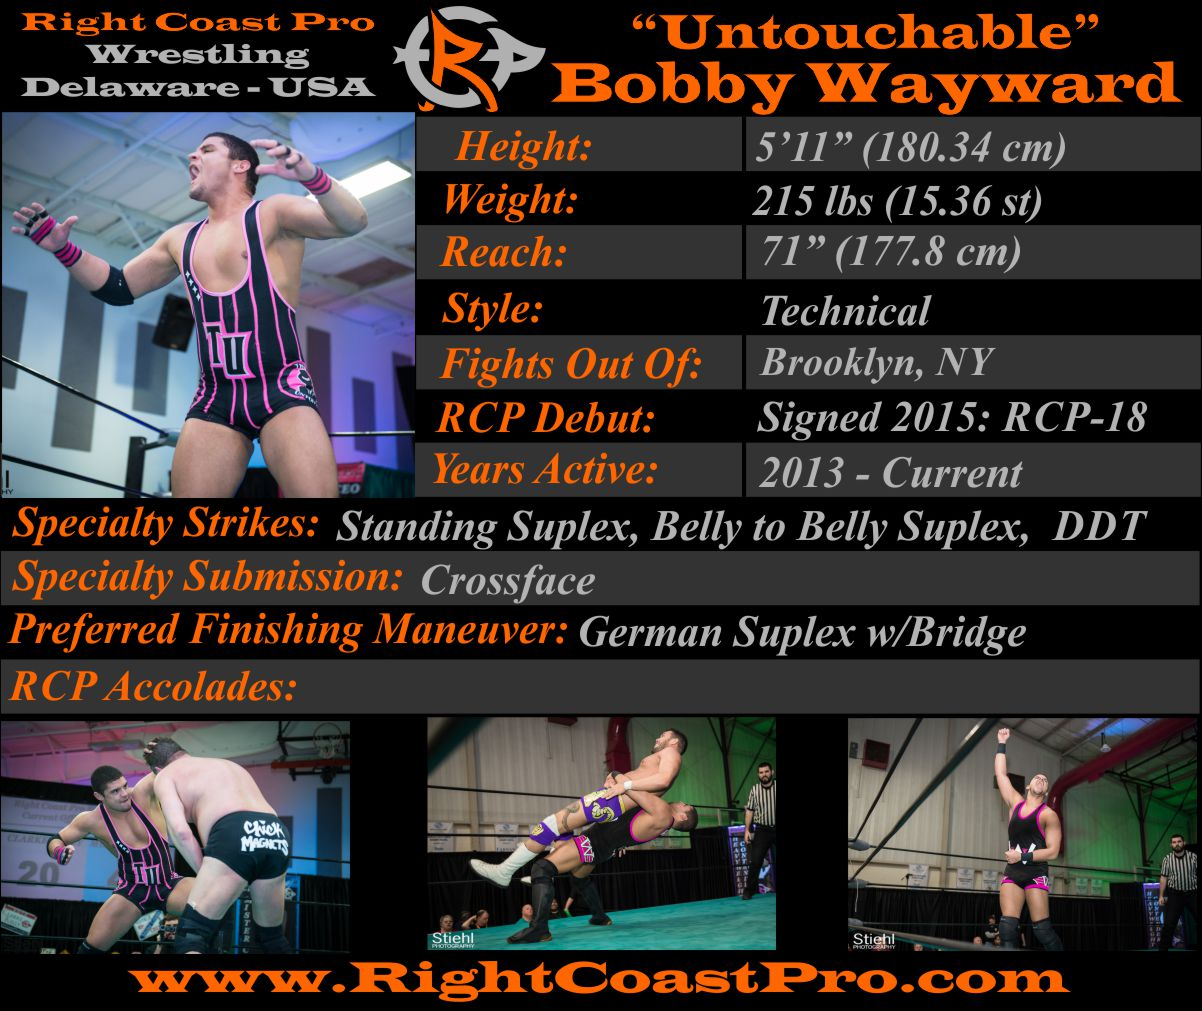 BobbyWayward Profiles RightCoastPro Wrestling Delaware